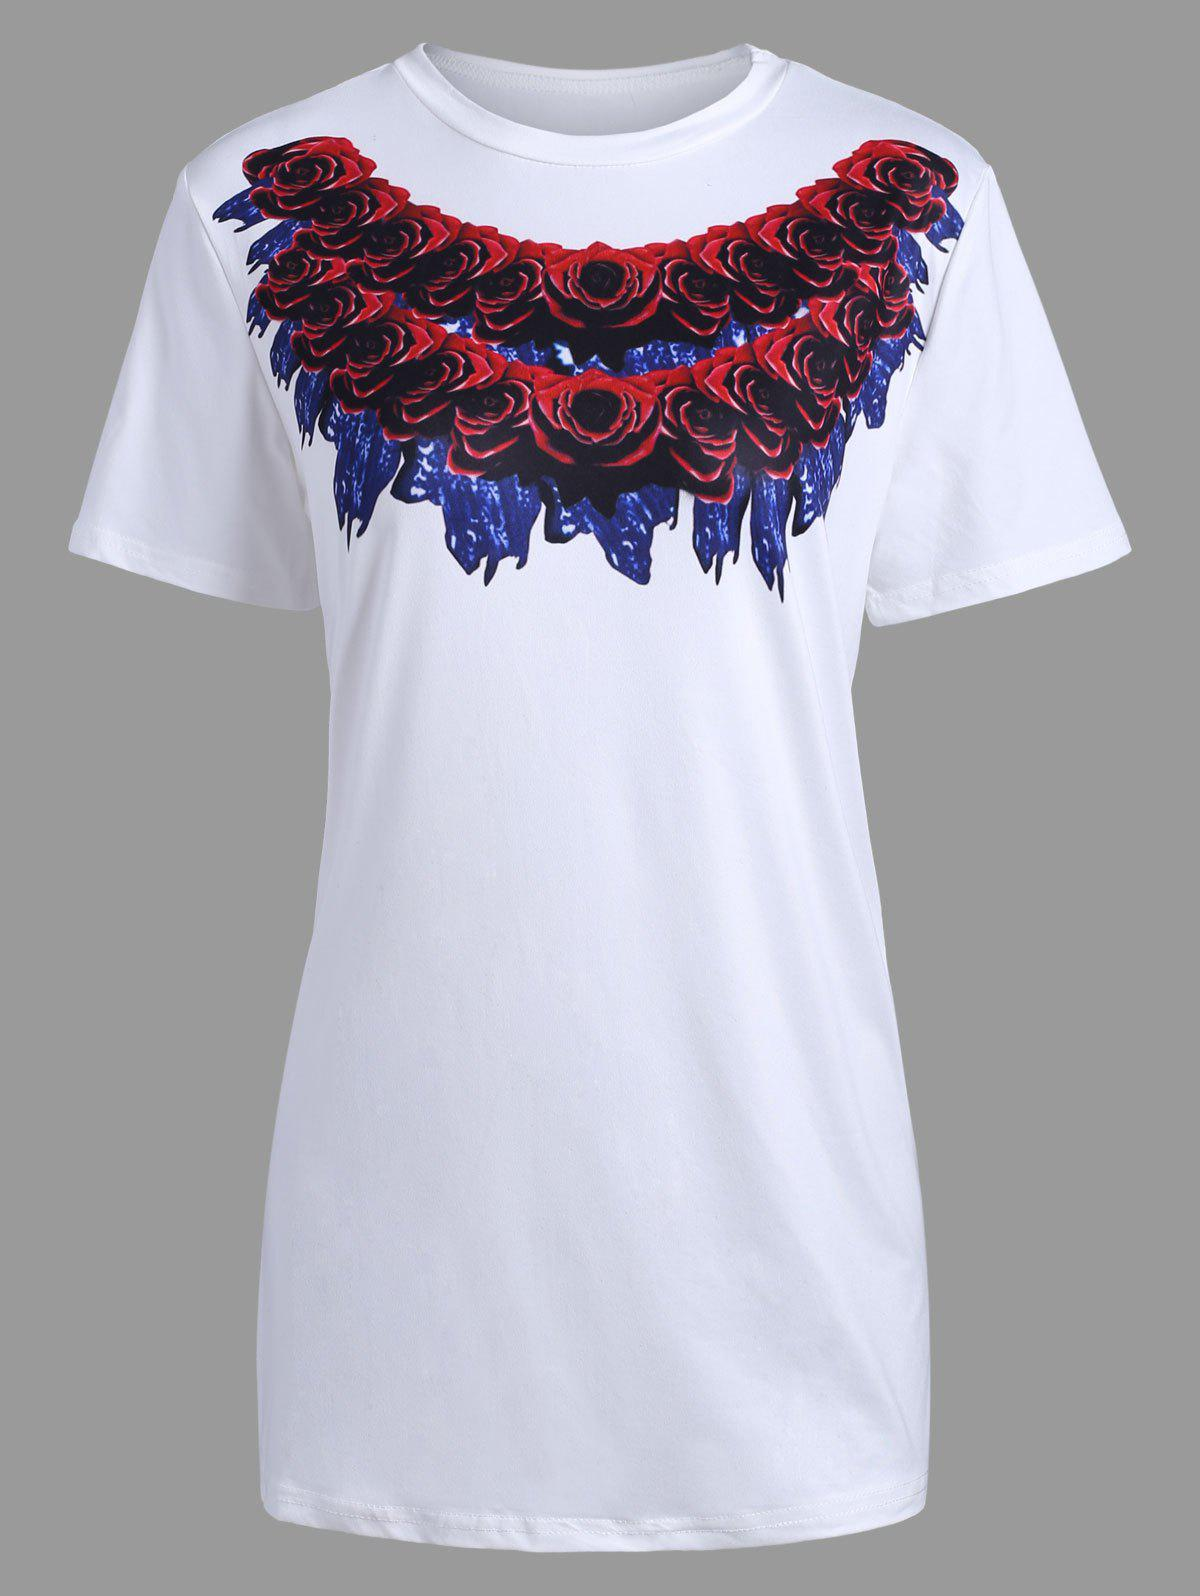 Long 3D Rose Print Short Sleeve T-shirt - WHITE S